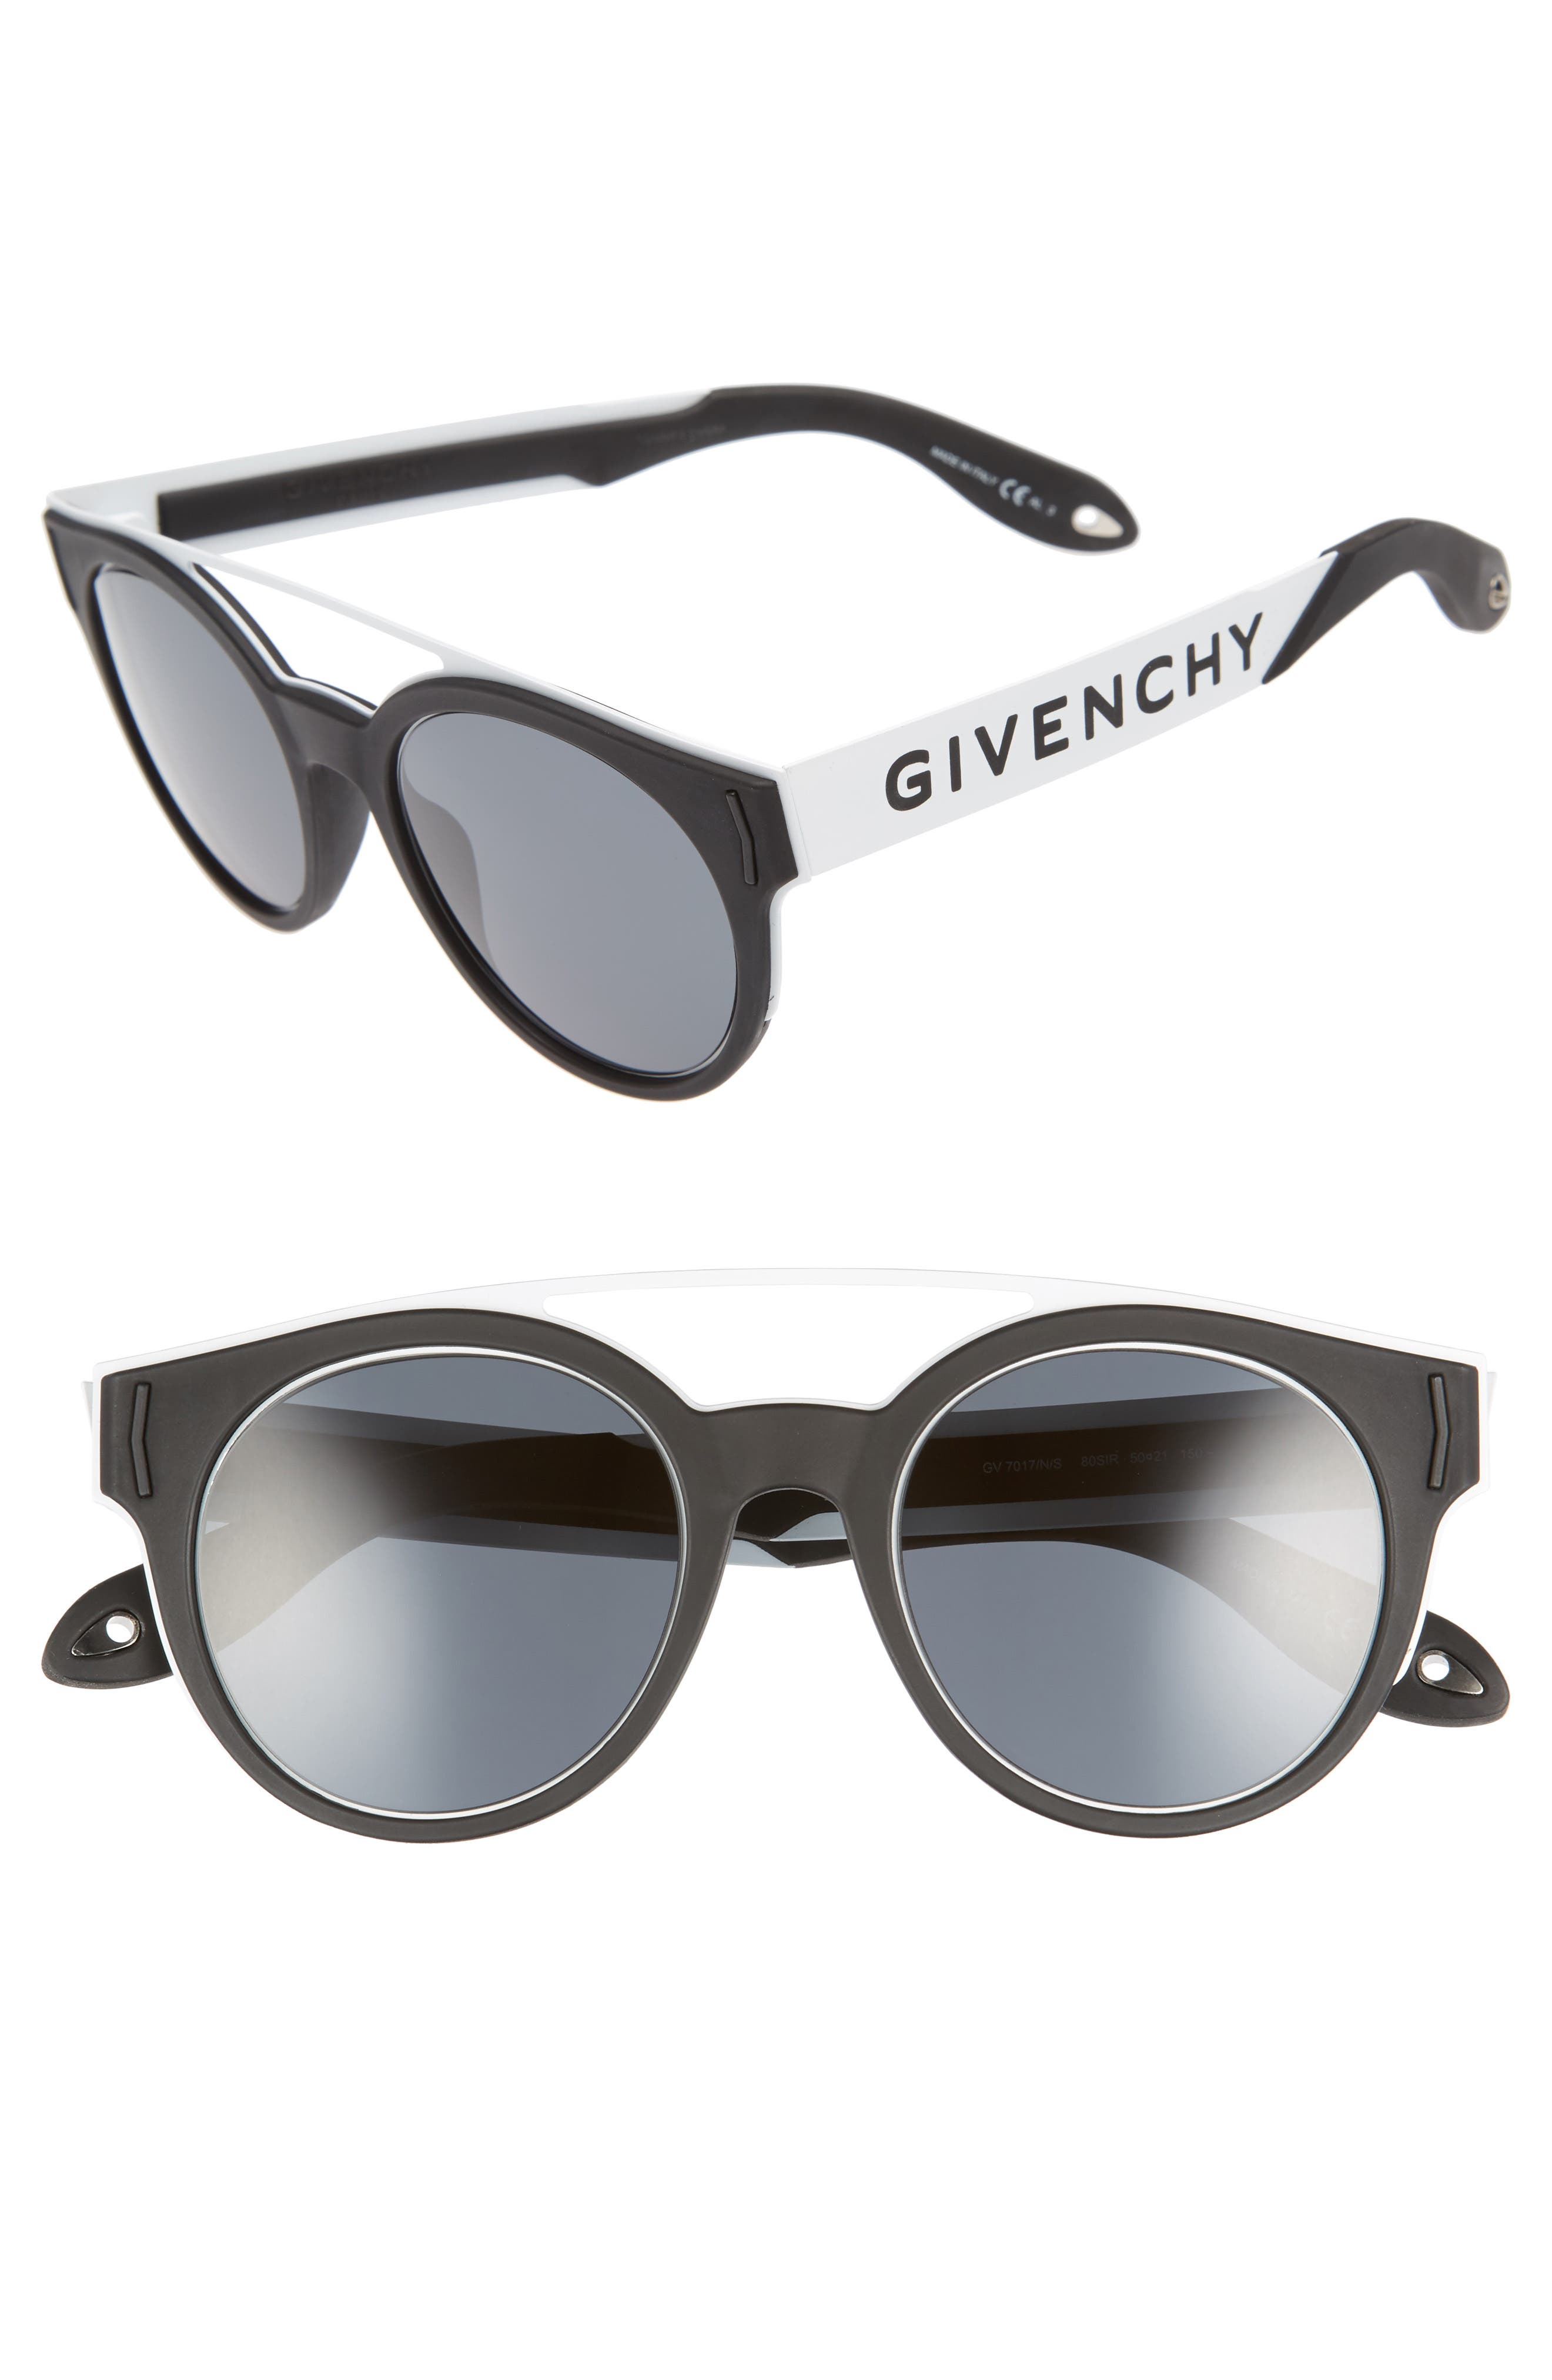 50mm Round Sunglasses,                         Main,                         color, Black/ White